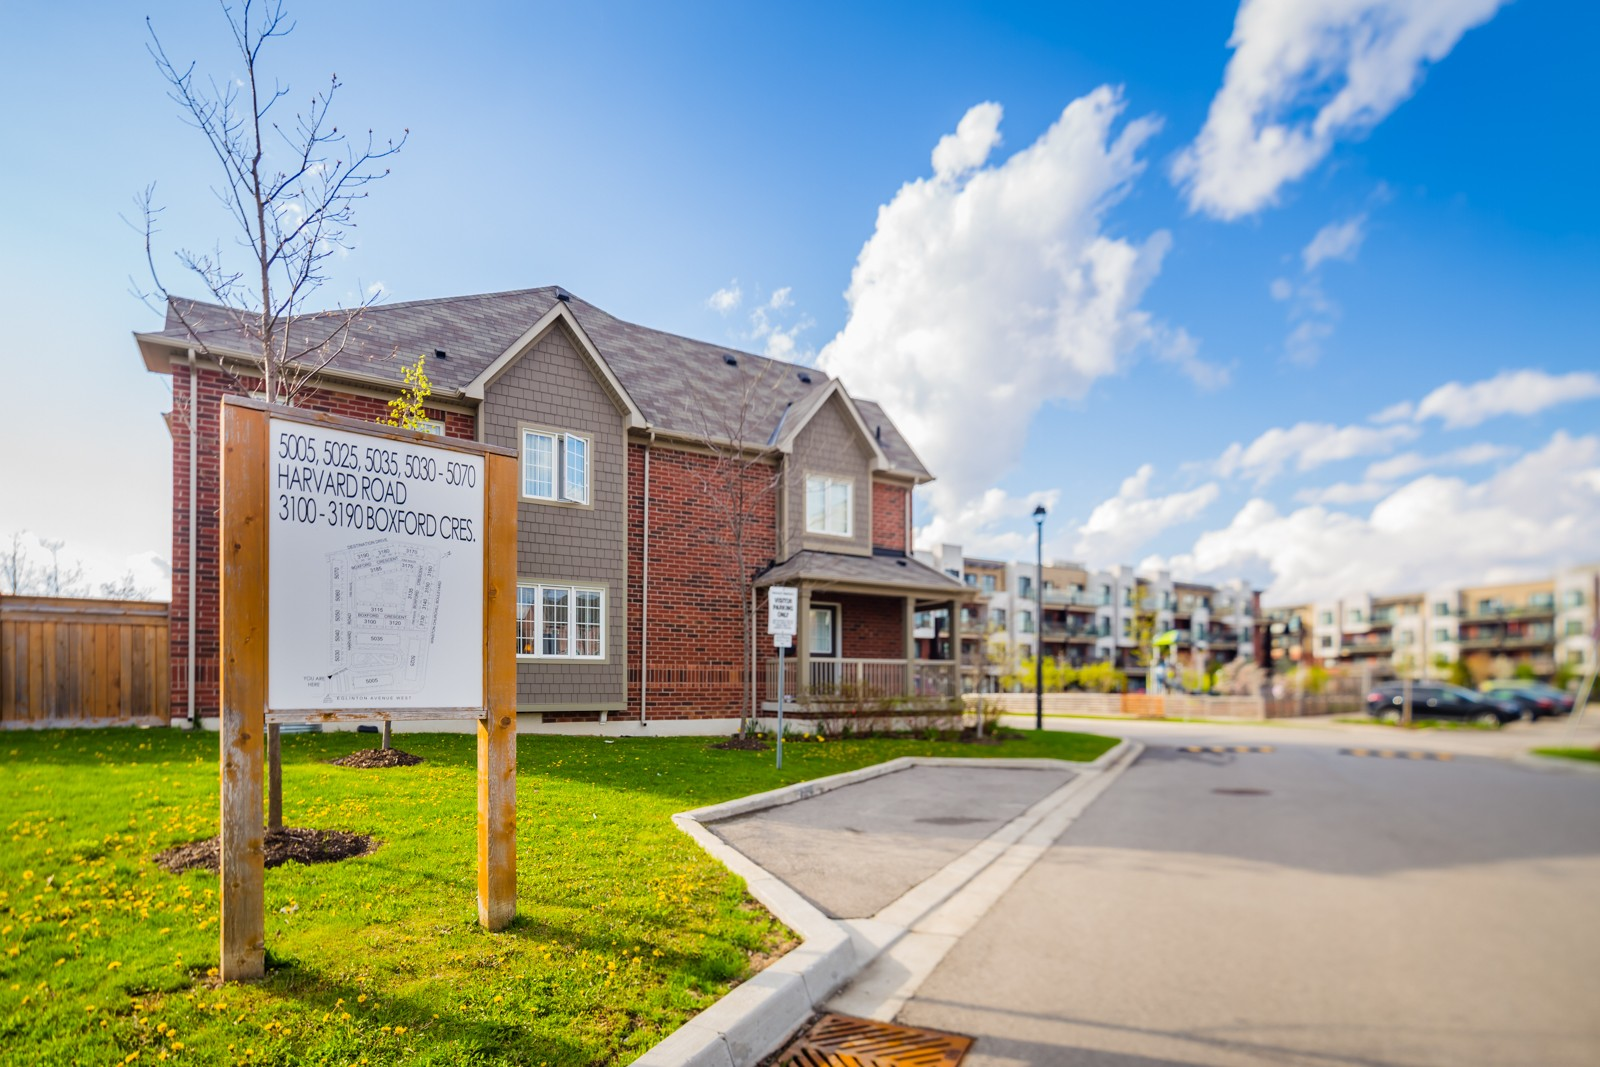 3185 Boxford Cres Townhouses at 3185 Boxford Cres, Mississauga 1